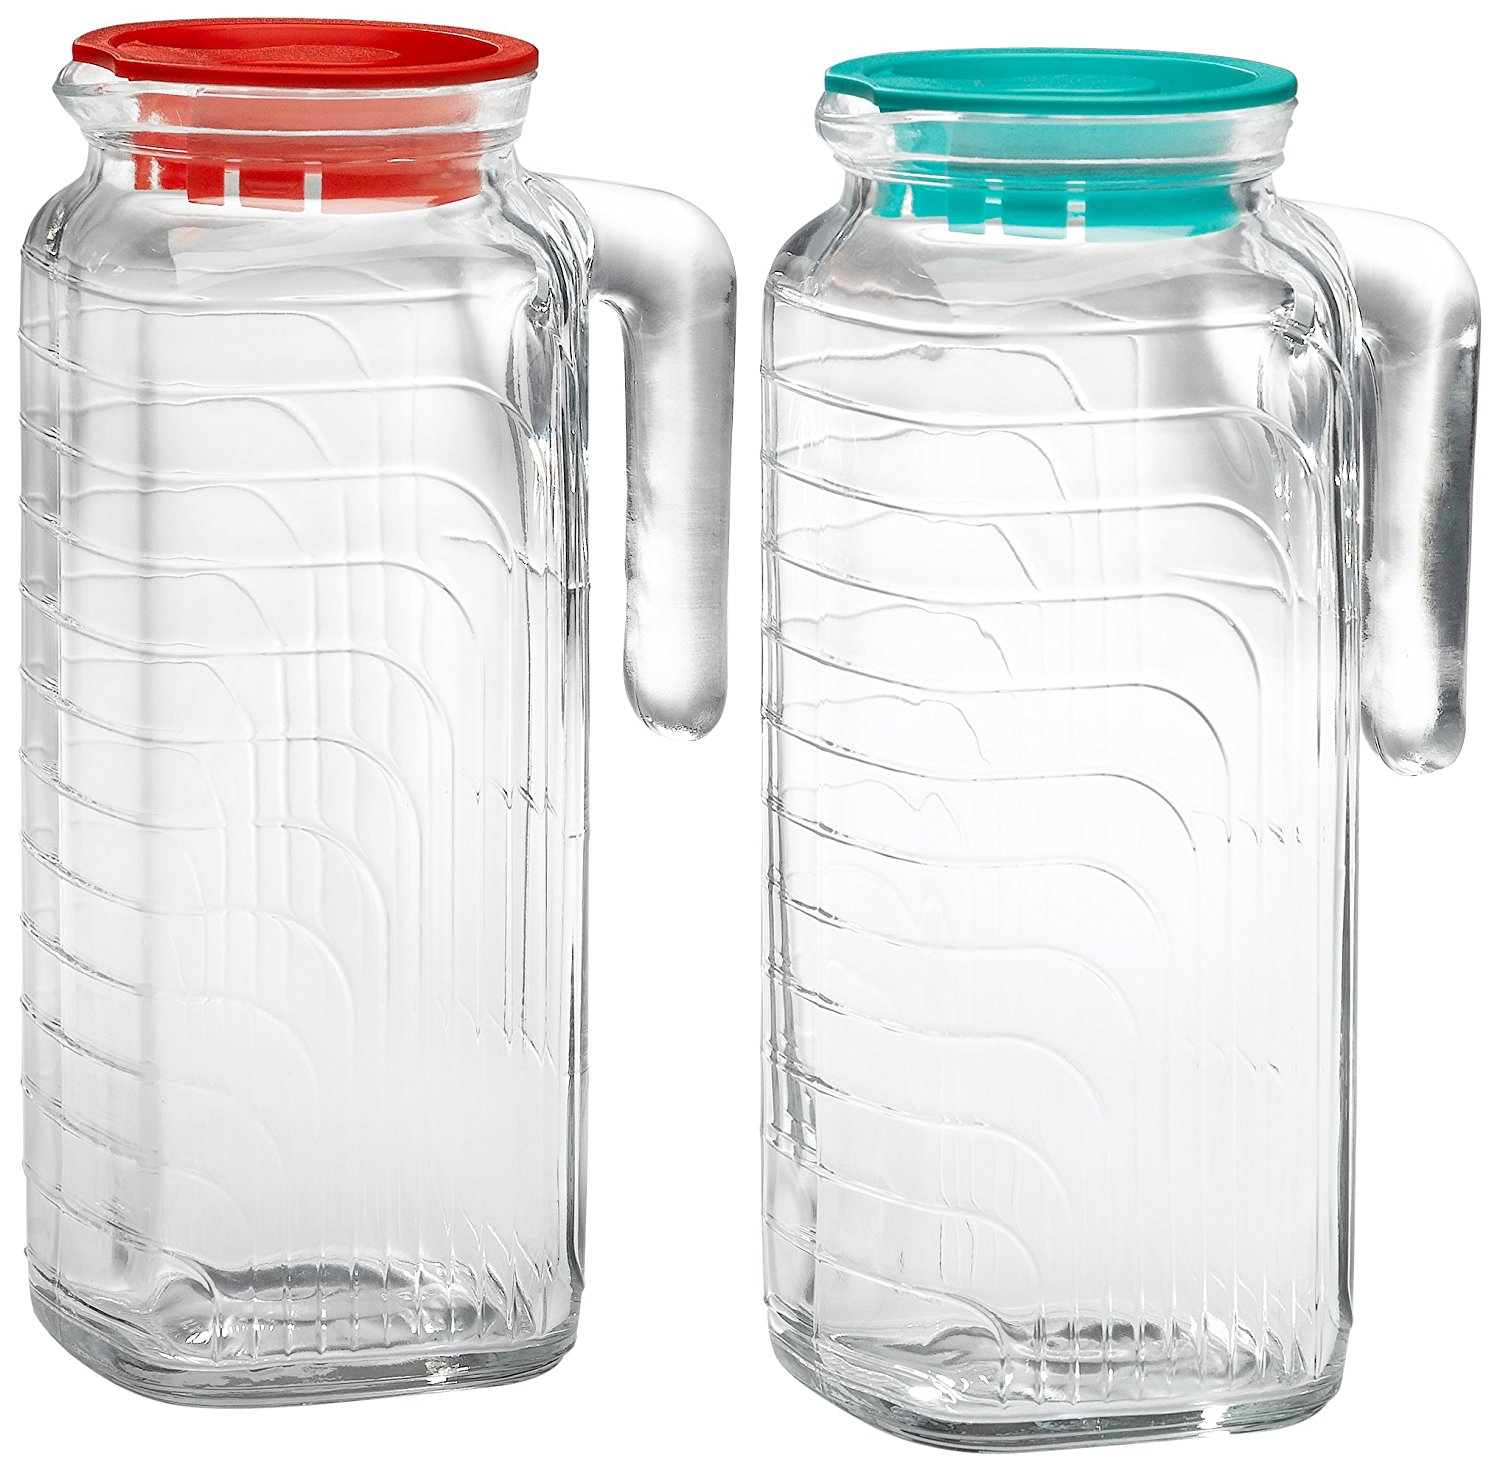 Gelo 2-Piece Glass Pitcher Set with Lids, Red and Green 1.2 liter, LidCovered Sand Liter... by